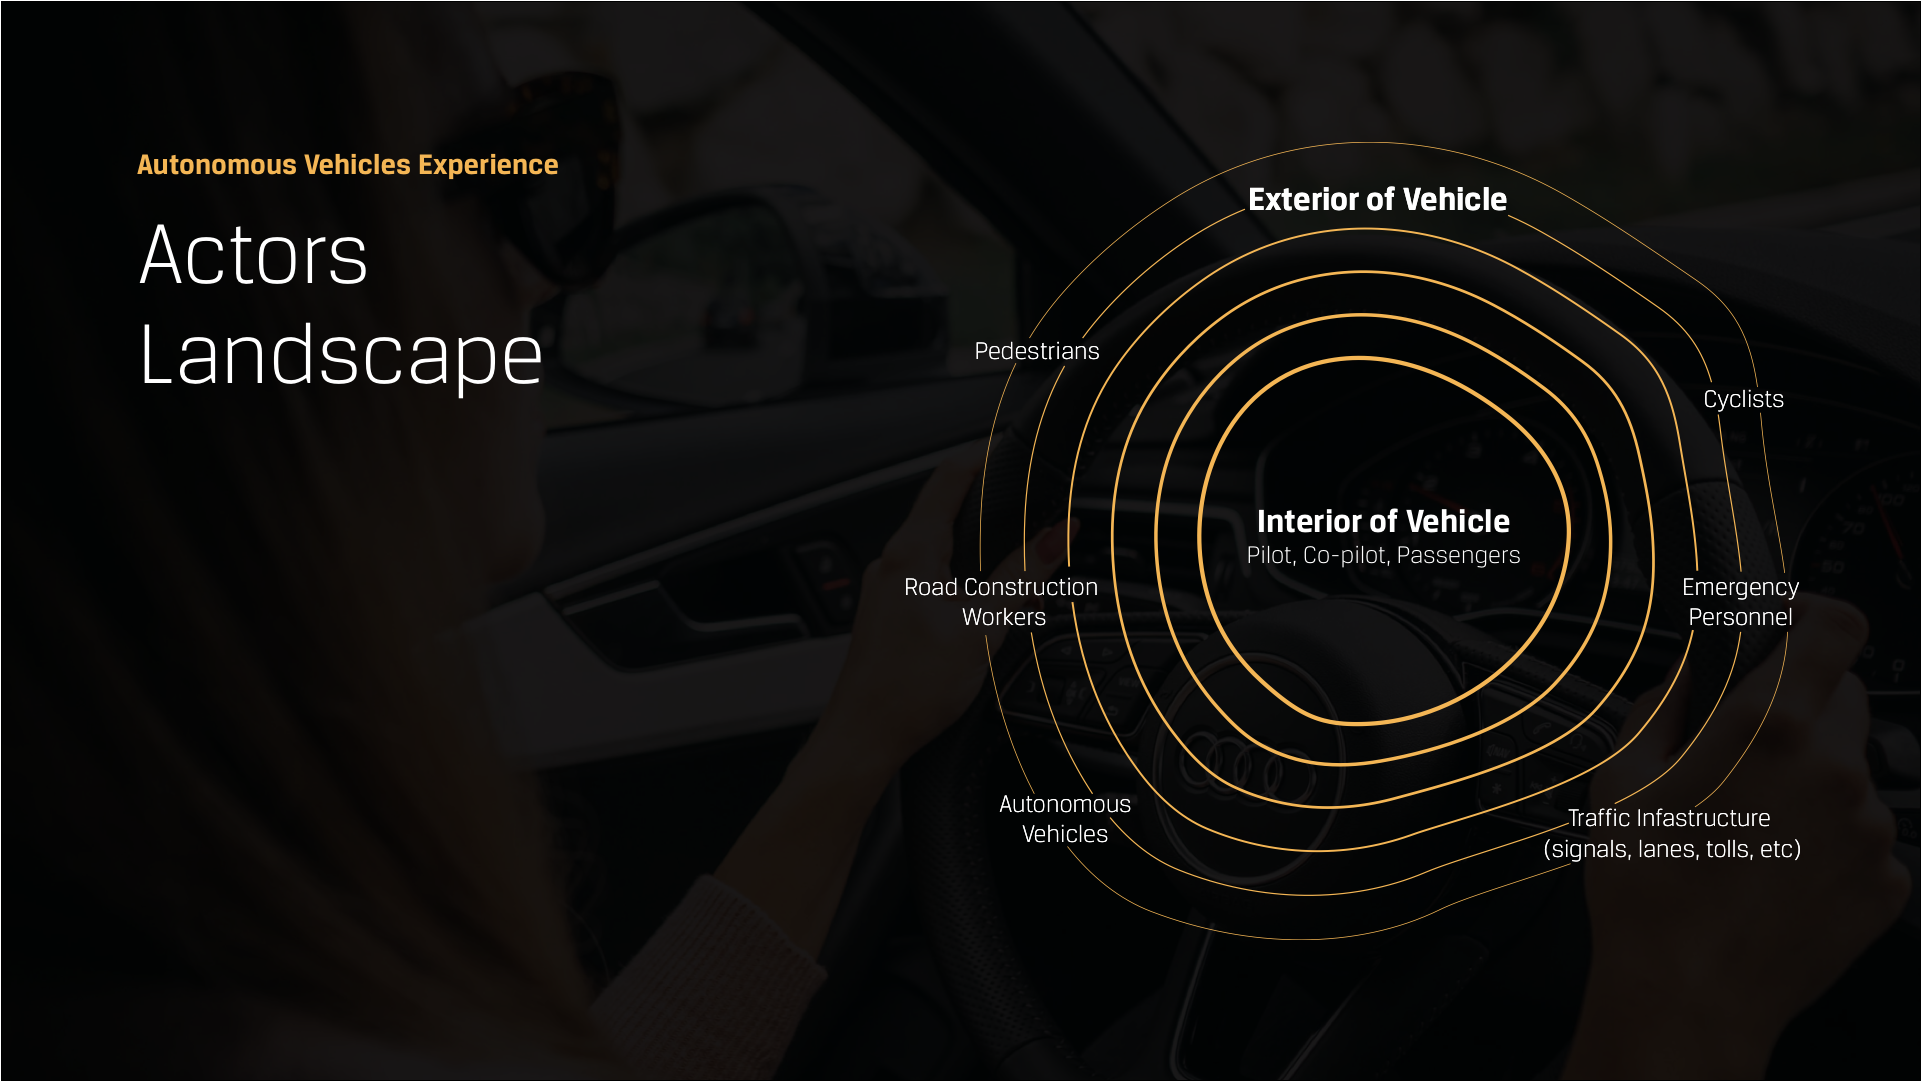 Digram reflecting the actors landscape inside and outside the vehicle